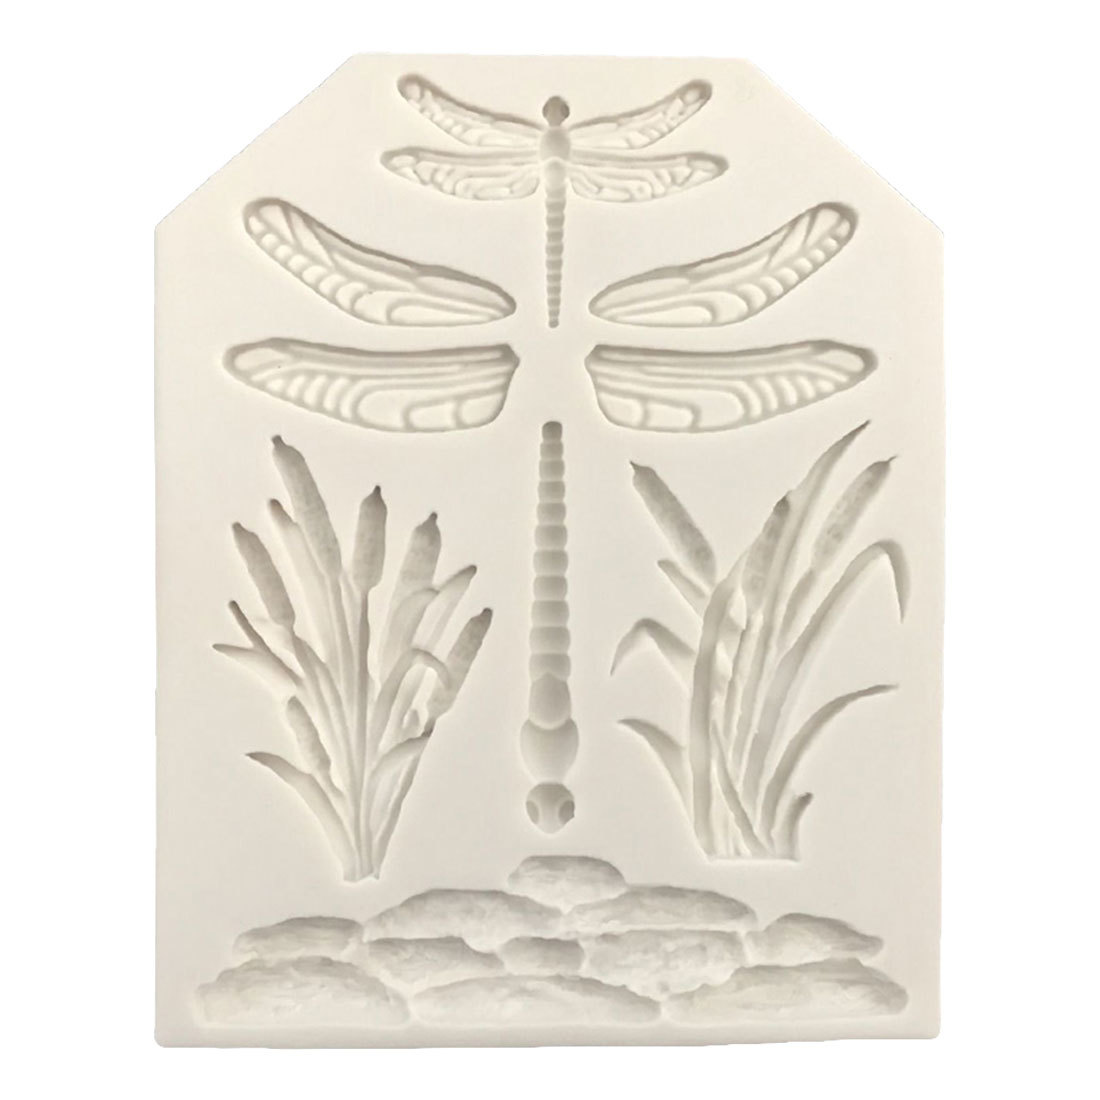 Hot Sale!Dragonfly Grass <font><b>Cake</b></font> Border Decoration <font><b>Silicone</b></font> <font><b>Mold</b></font> <font><b>Fondant</b></font> <font><b>Cake</b></font> <font><b>Decorating</b></font> <font><b>Tools</b></font> Candy Chocolate Gumpaste <font><b>Molds</b></font> image